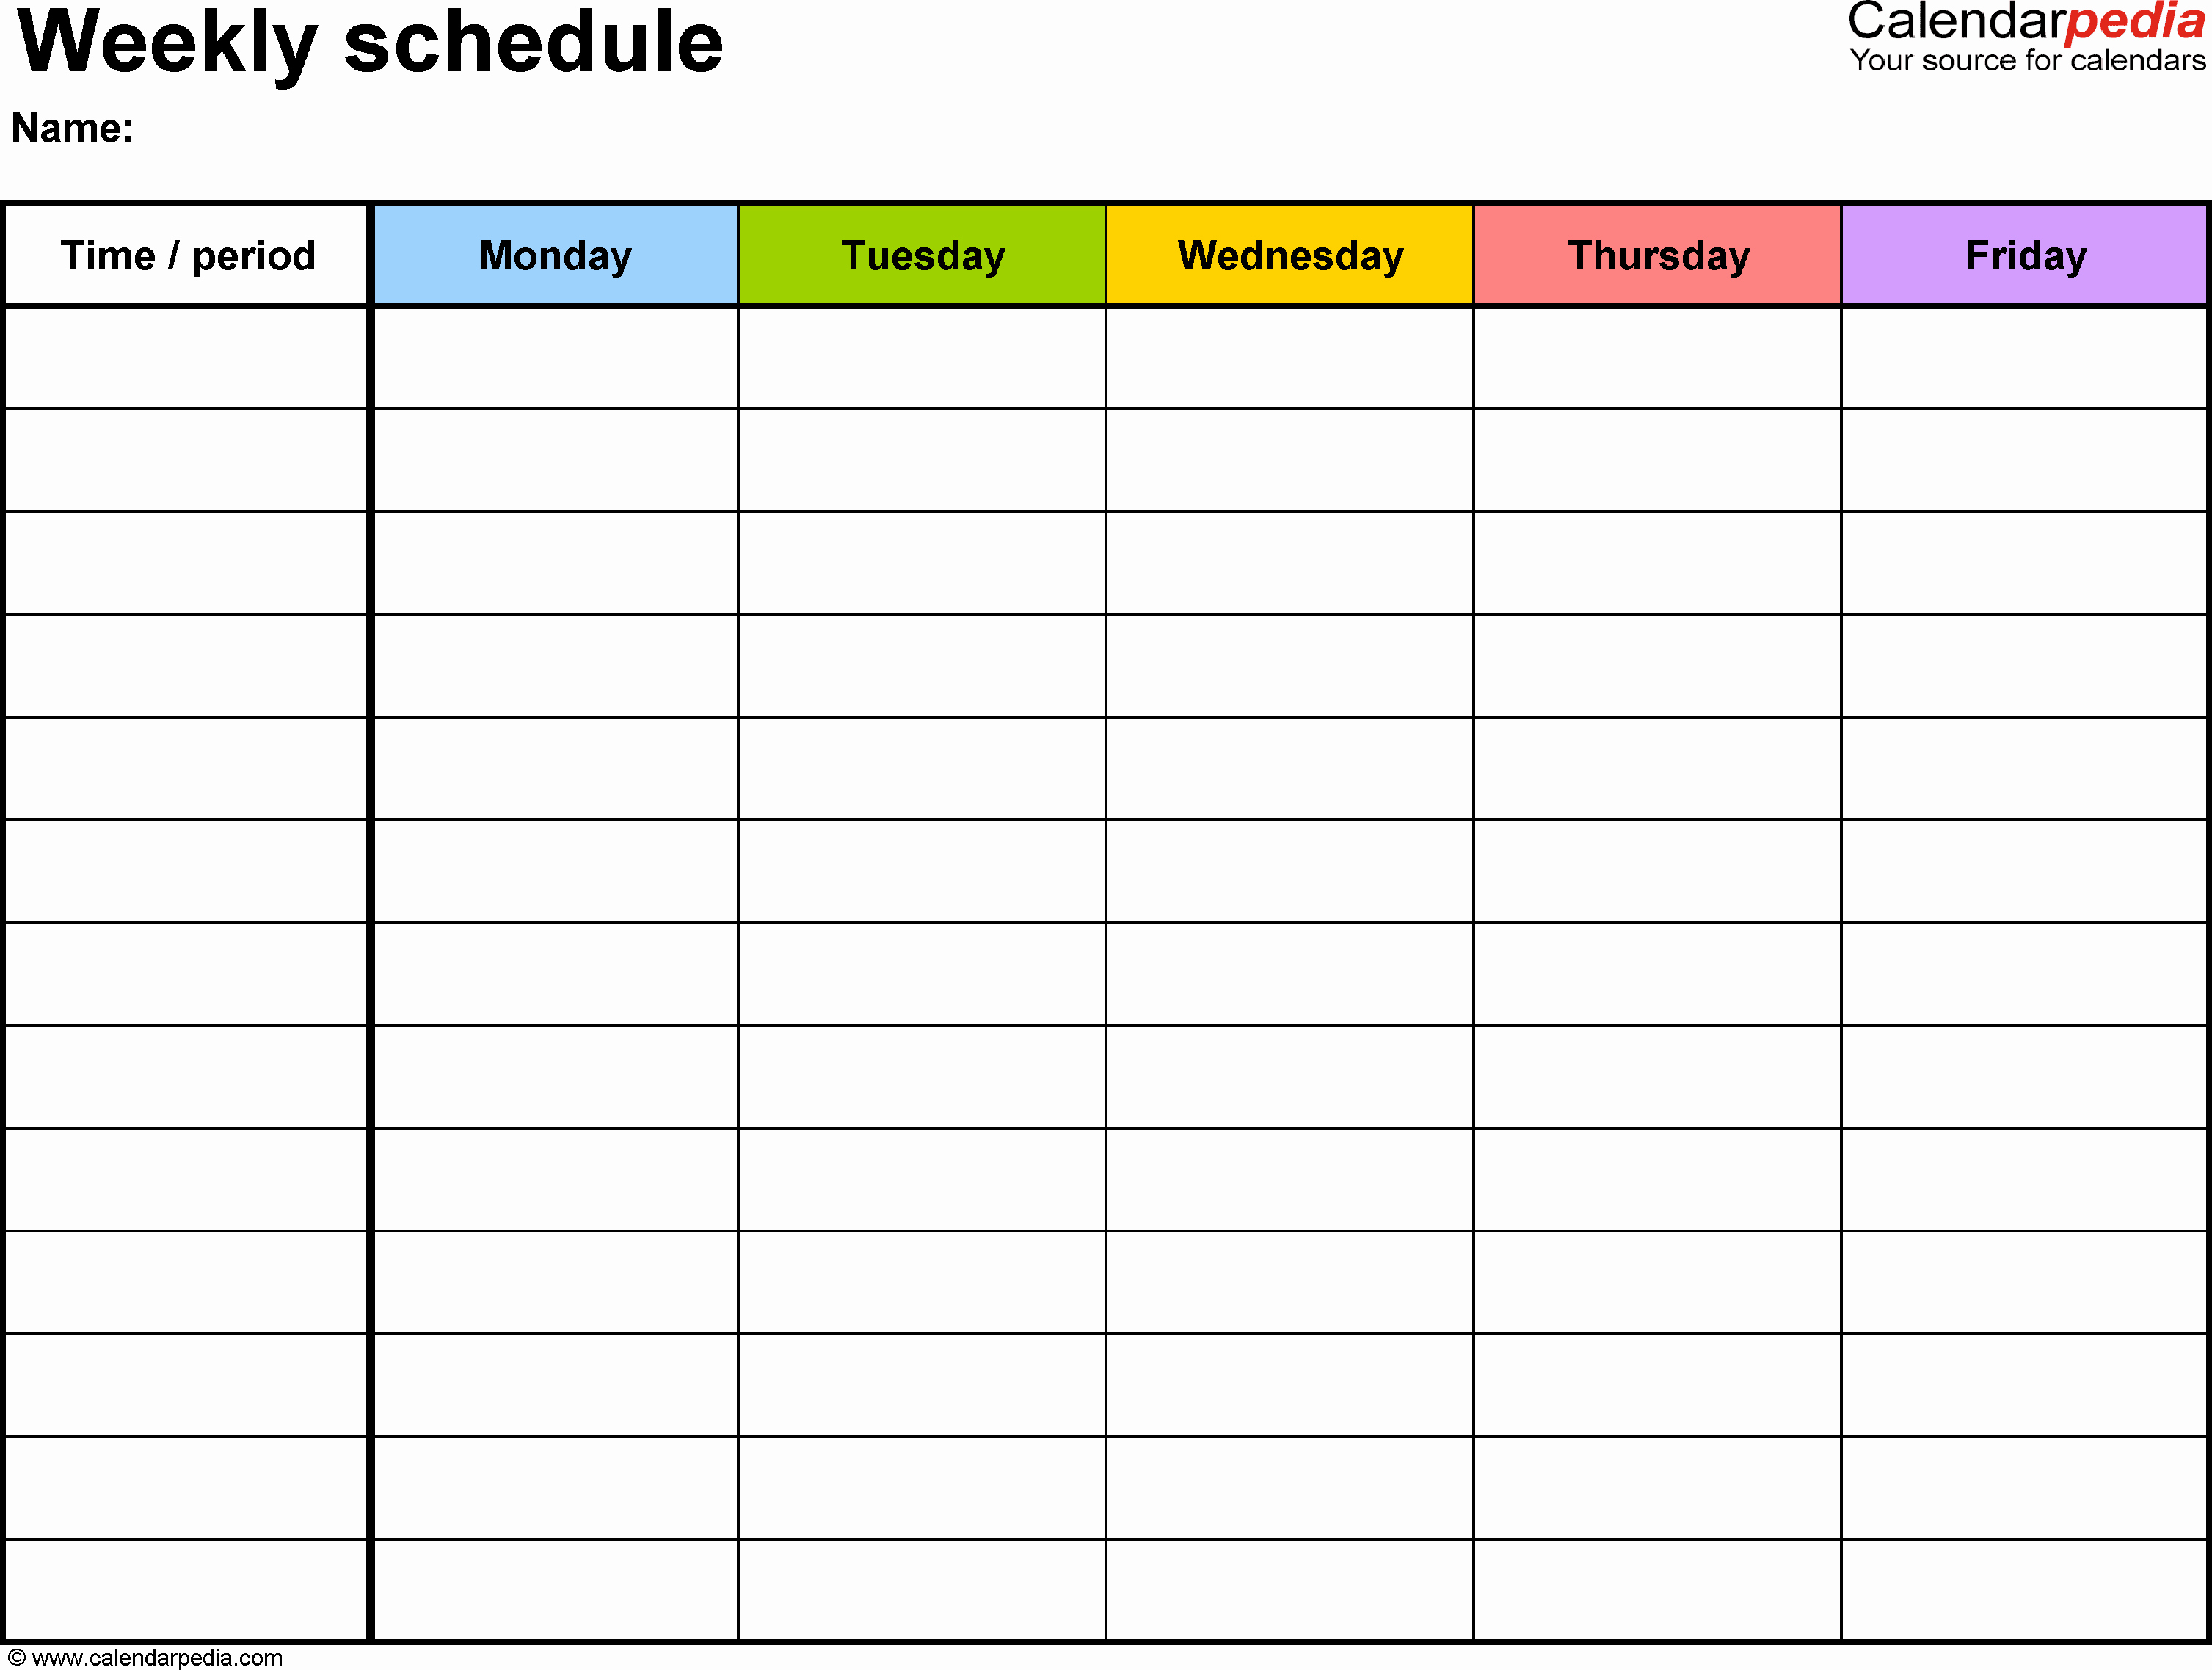 Class Schedule Maker for Teachers Beautiful Free Weekly Schedule Templates for Excel 18 Templates